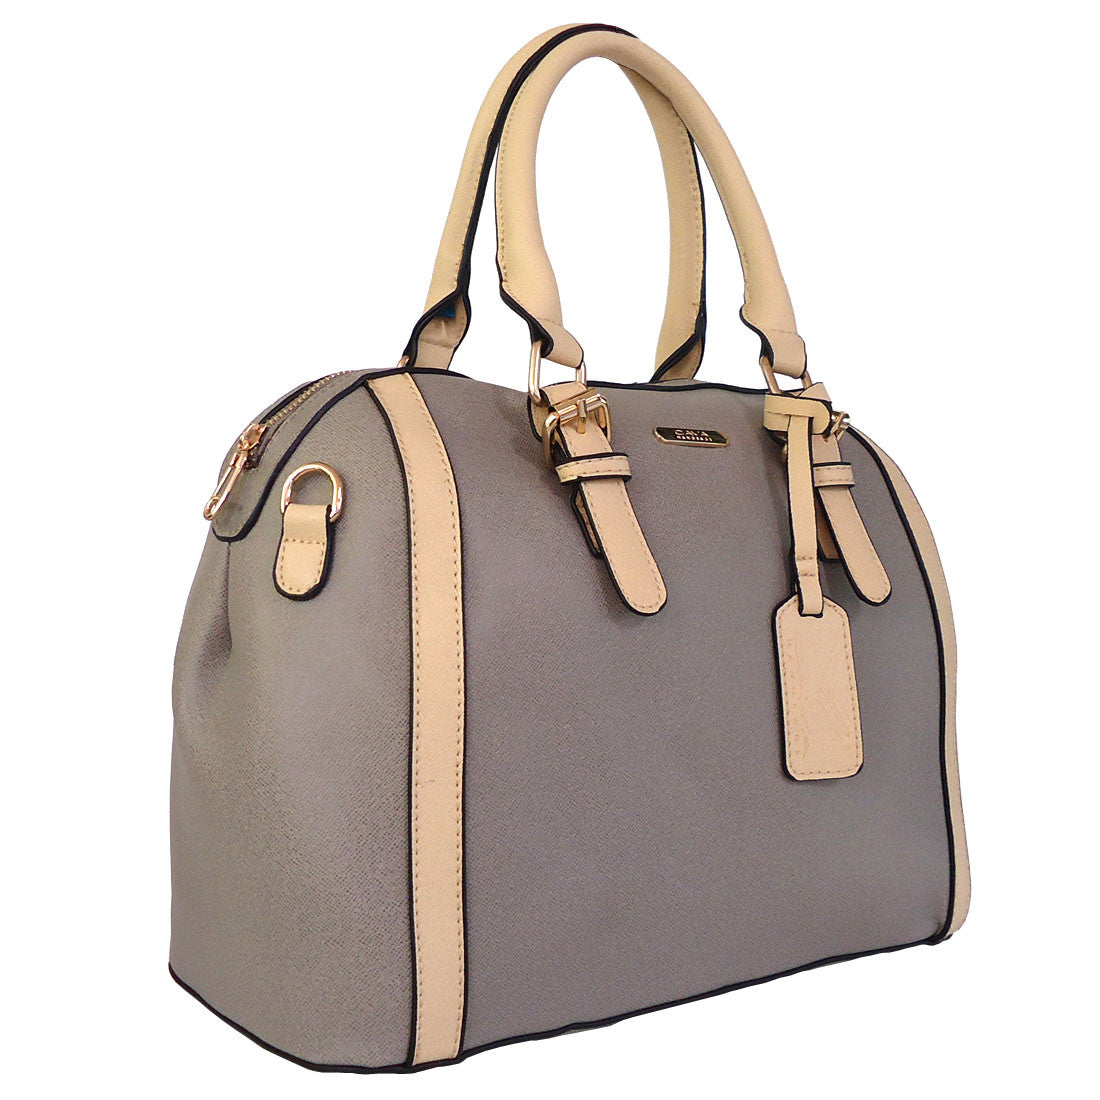 C16MR657GY 2-Tone Saffiano Doctor's Bag (Dark Grey)